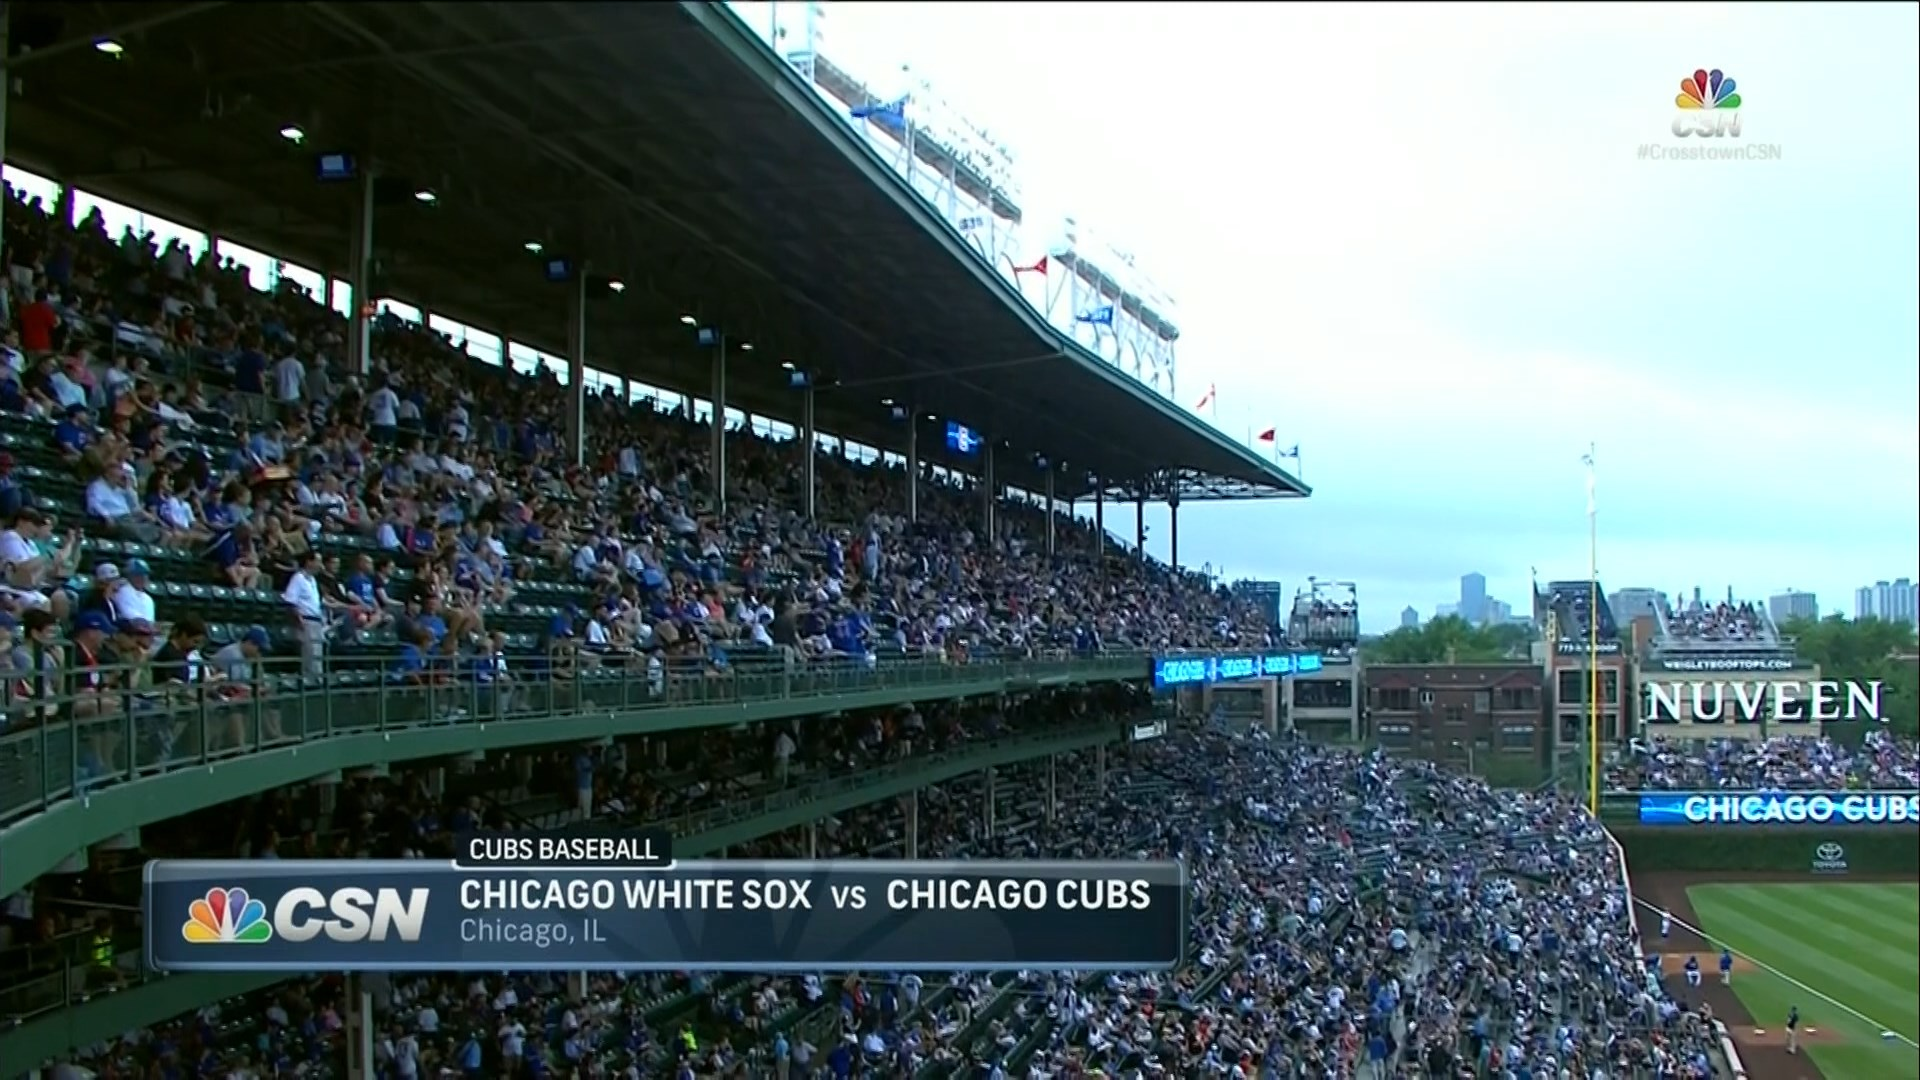 MLB 2016 / IL / RS / 28.07.2016 / Chicago White Sox @ Chicago Cubs (2 / 2) [Бейсбол, HD / 1080i, MKV / H.264, RU-EN / Viasat Sport]